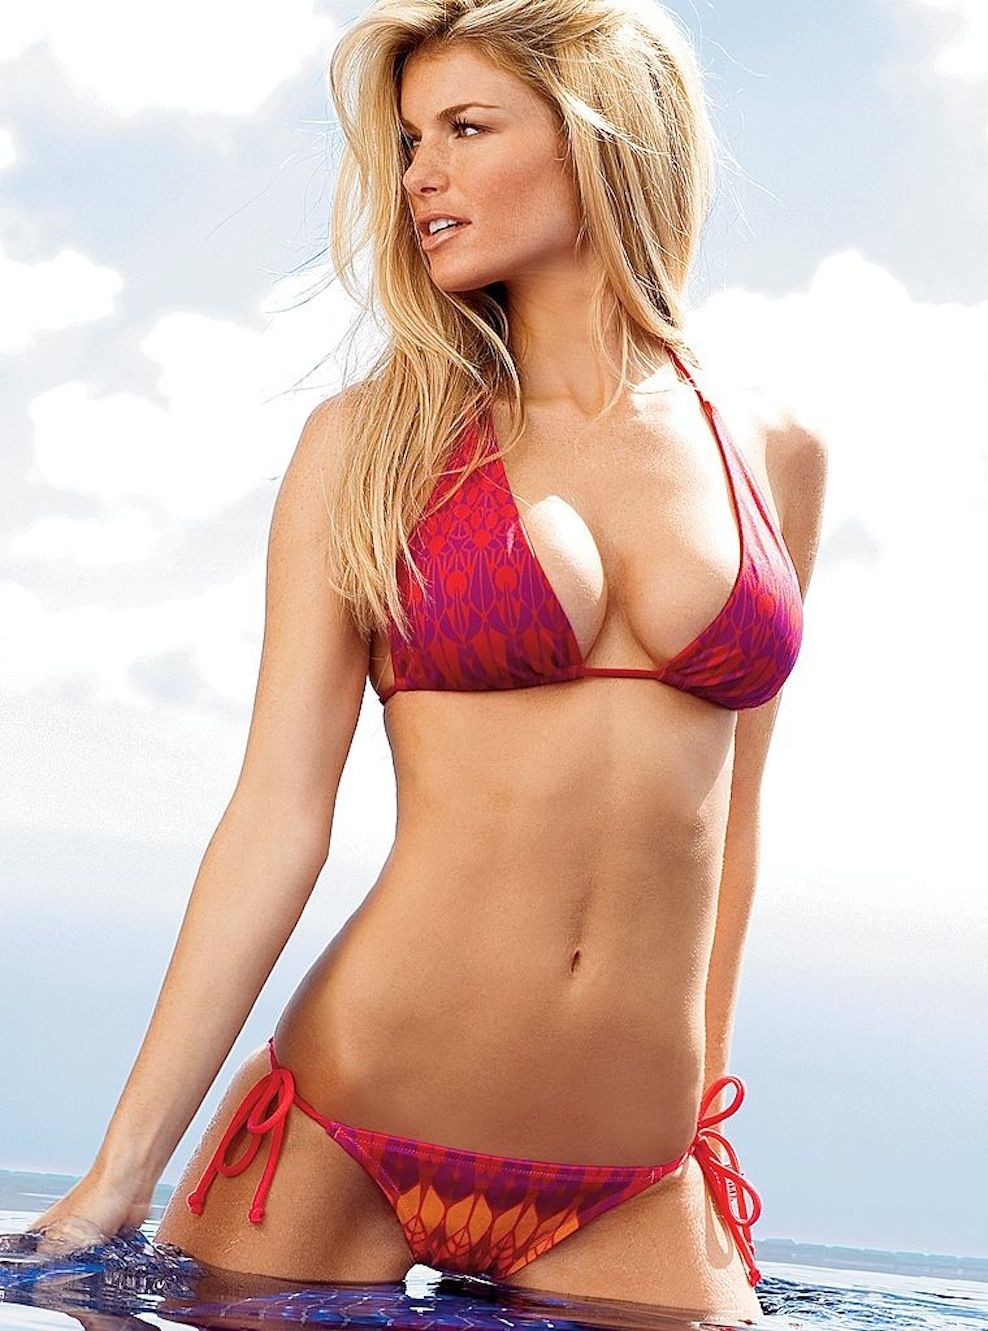 FHM Votes Marisa Miller As Hottest Woman Alive!